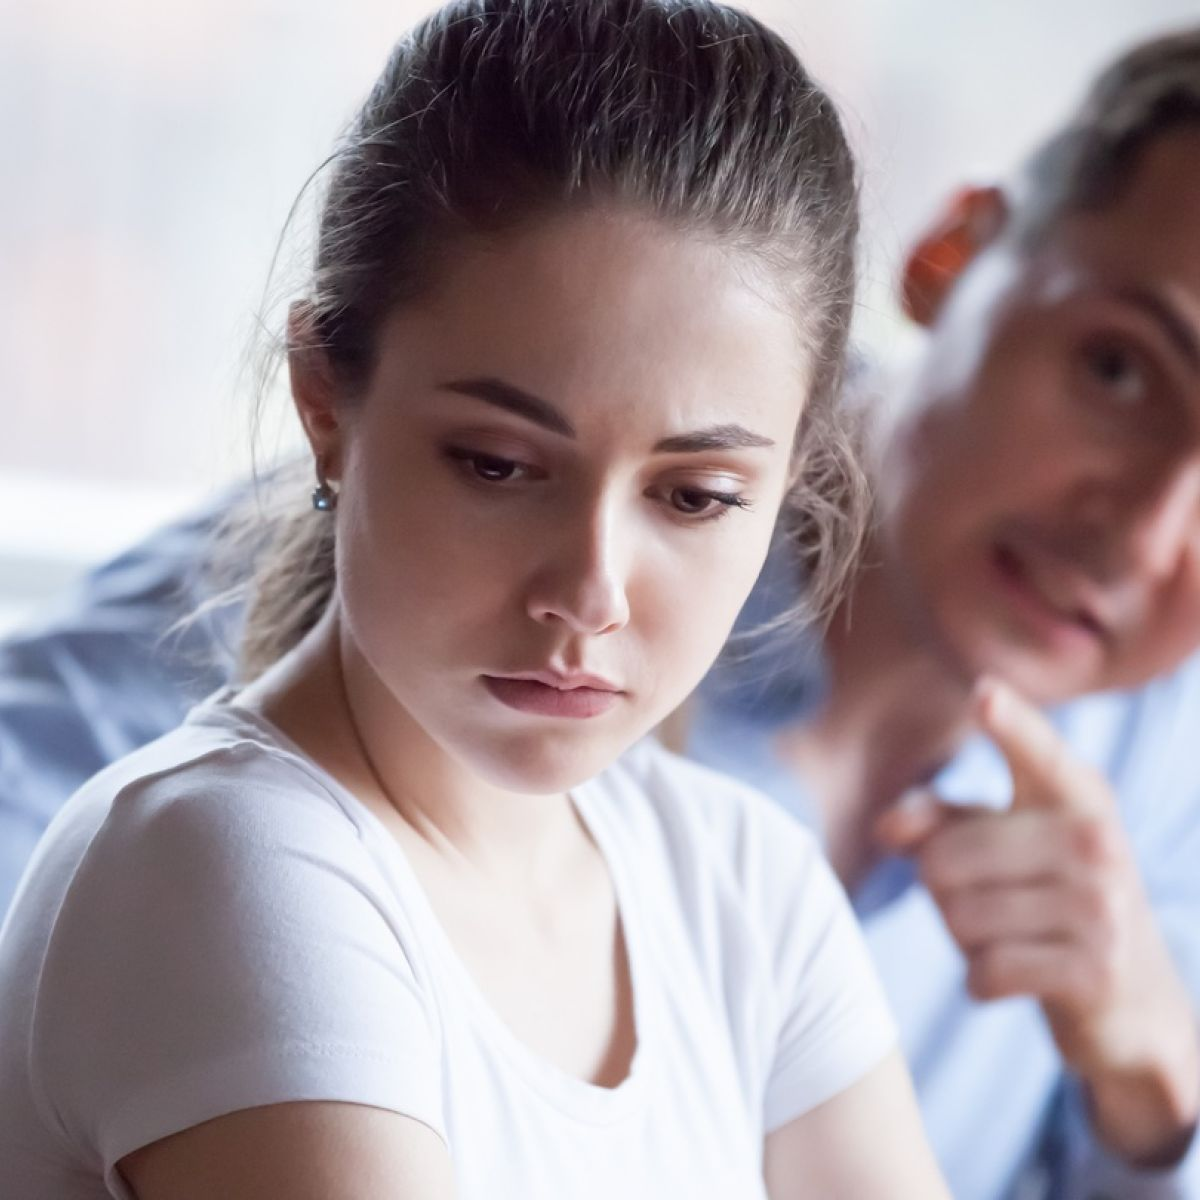 My Girlfriend Has A Low Libido And I Get Angry When Rejected